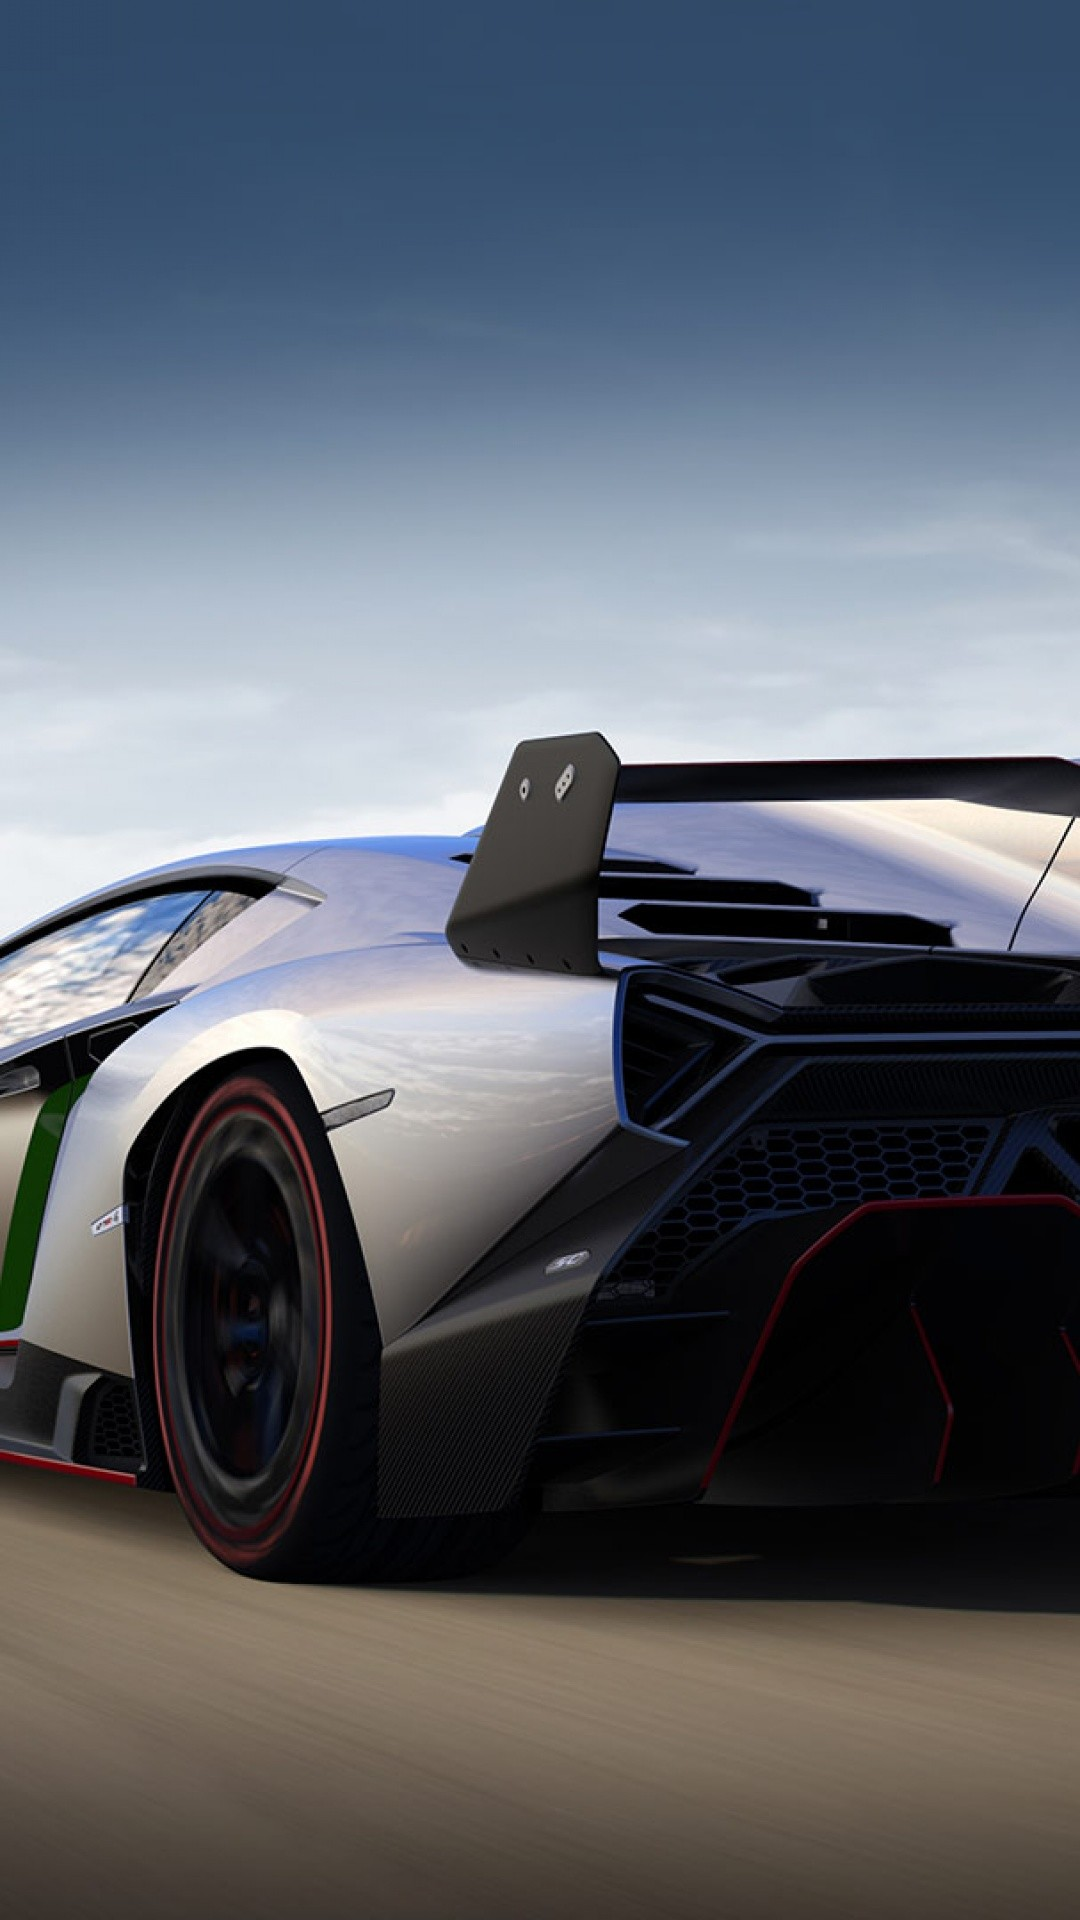 lamborghini veneno roadster wallpaper. 1920x1080 car vehicle green cars lamborghini veneno roadster wallpapers hd desktop and mobile backgrounds wallpaper c